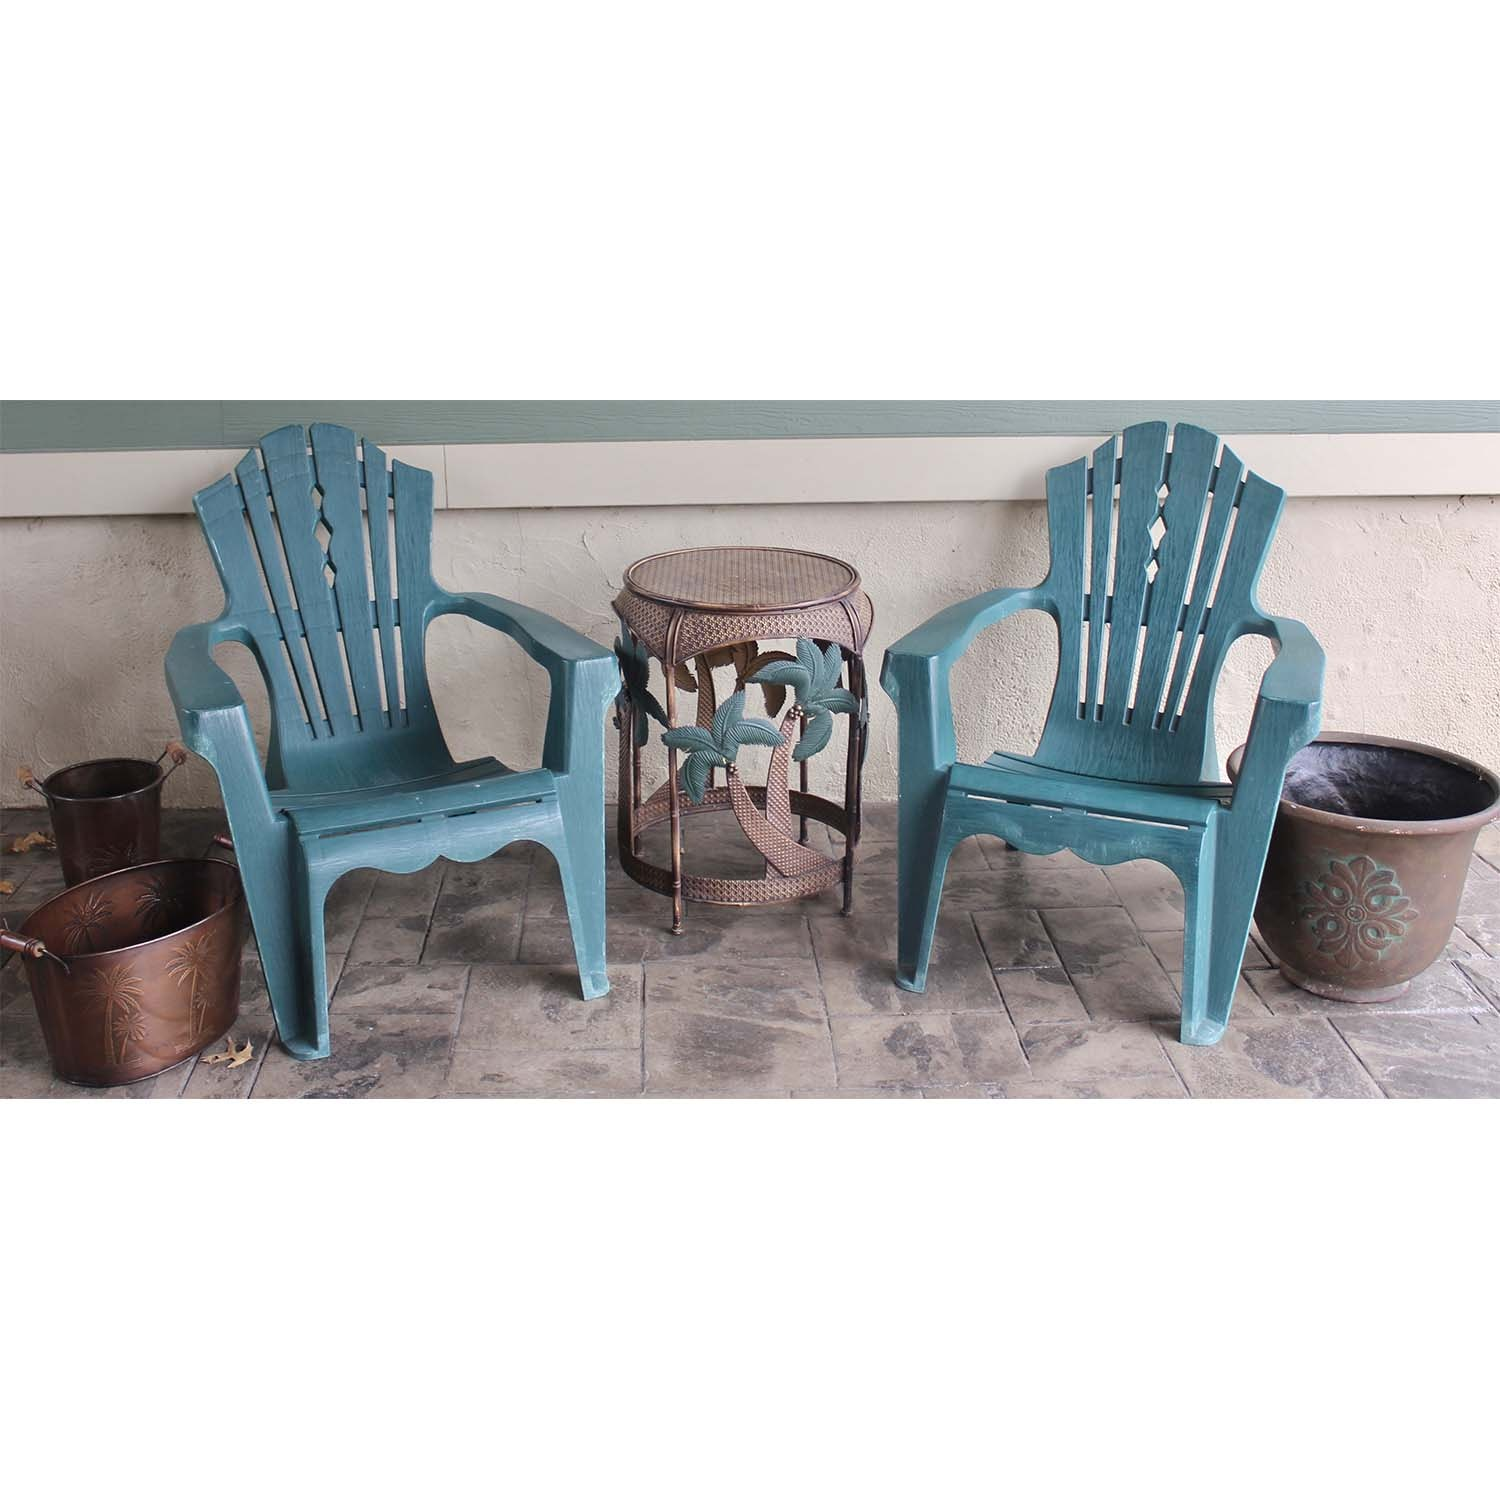 Outdoor Palm Tree Furniture